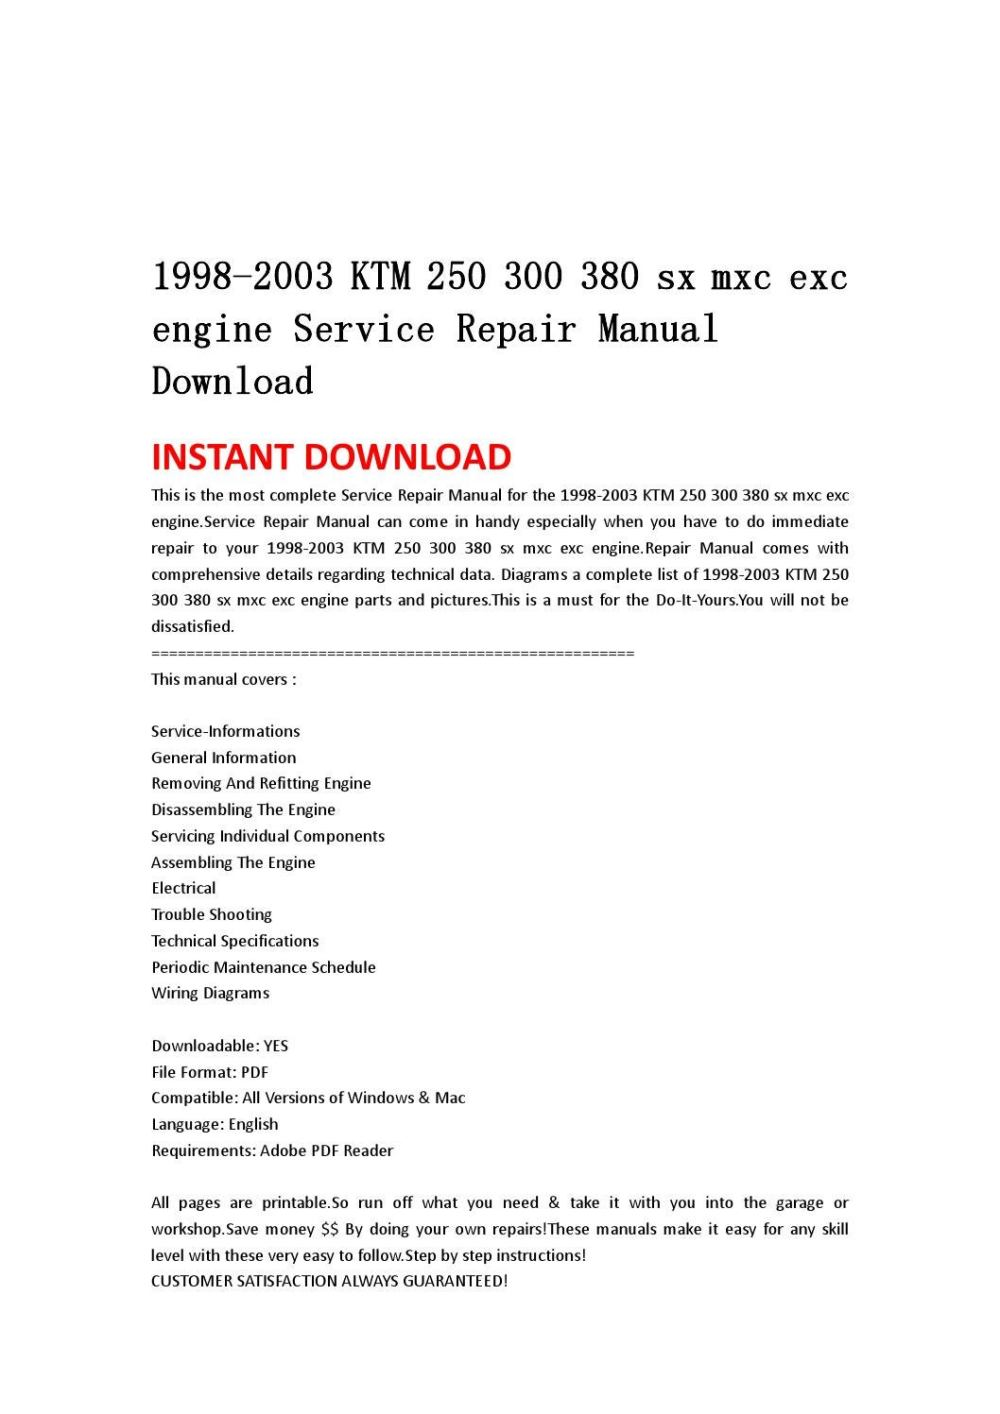 medium resolution of 1998 2003 ktm 250 300 380 sx mxc exc engine service repair manual download by jshnefm uhsnefn issuu